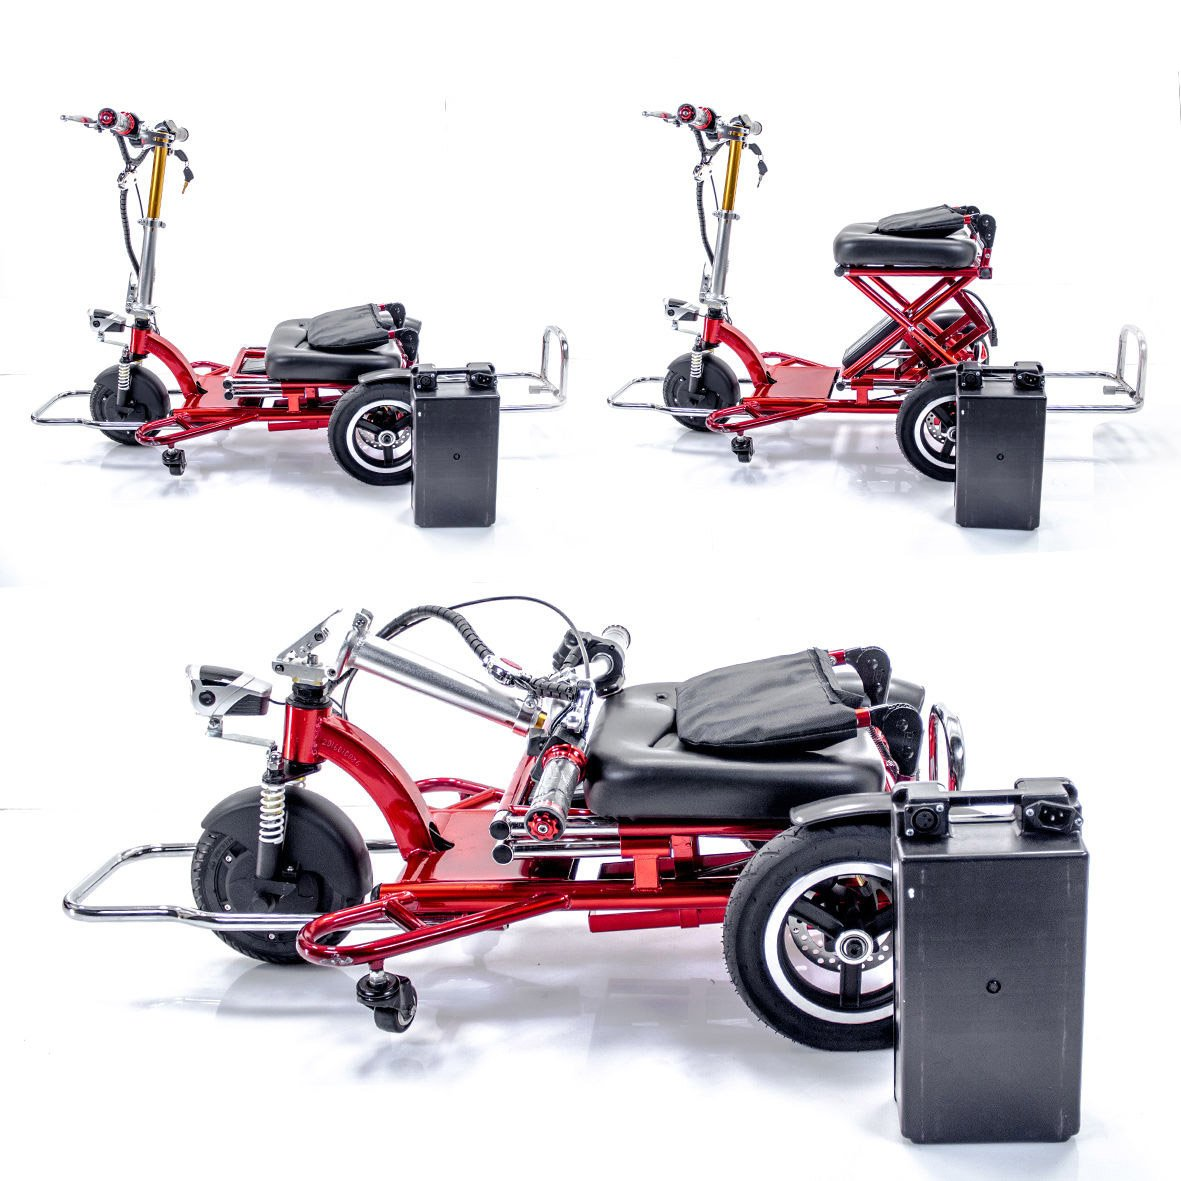 Amazon.com: Triaxe Sport Foldable Scooter - Color Metallic Red - 13